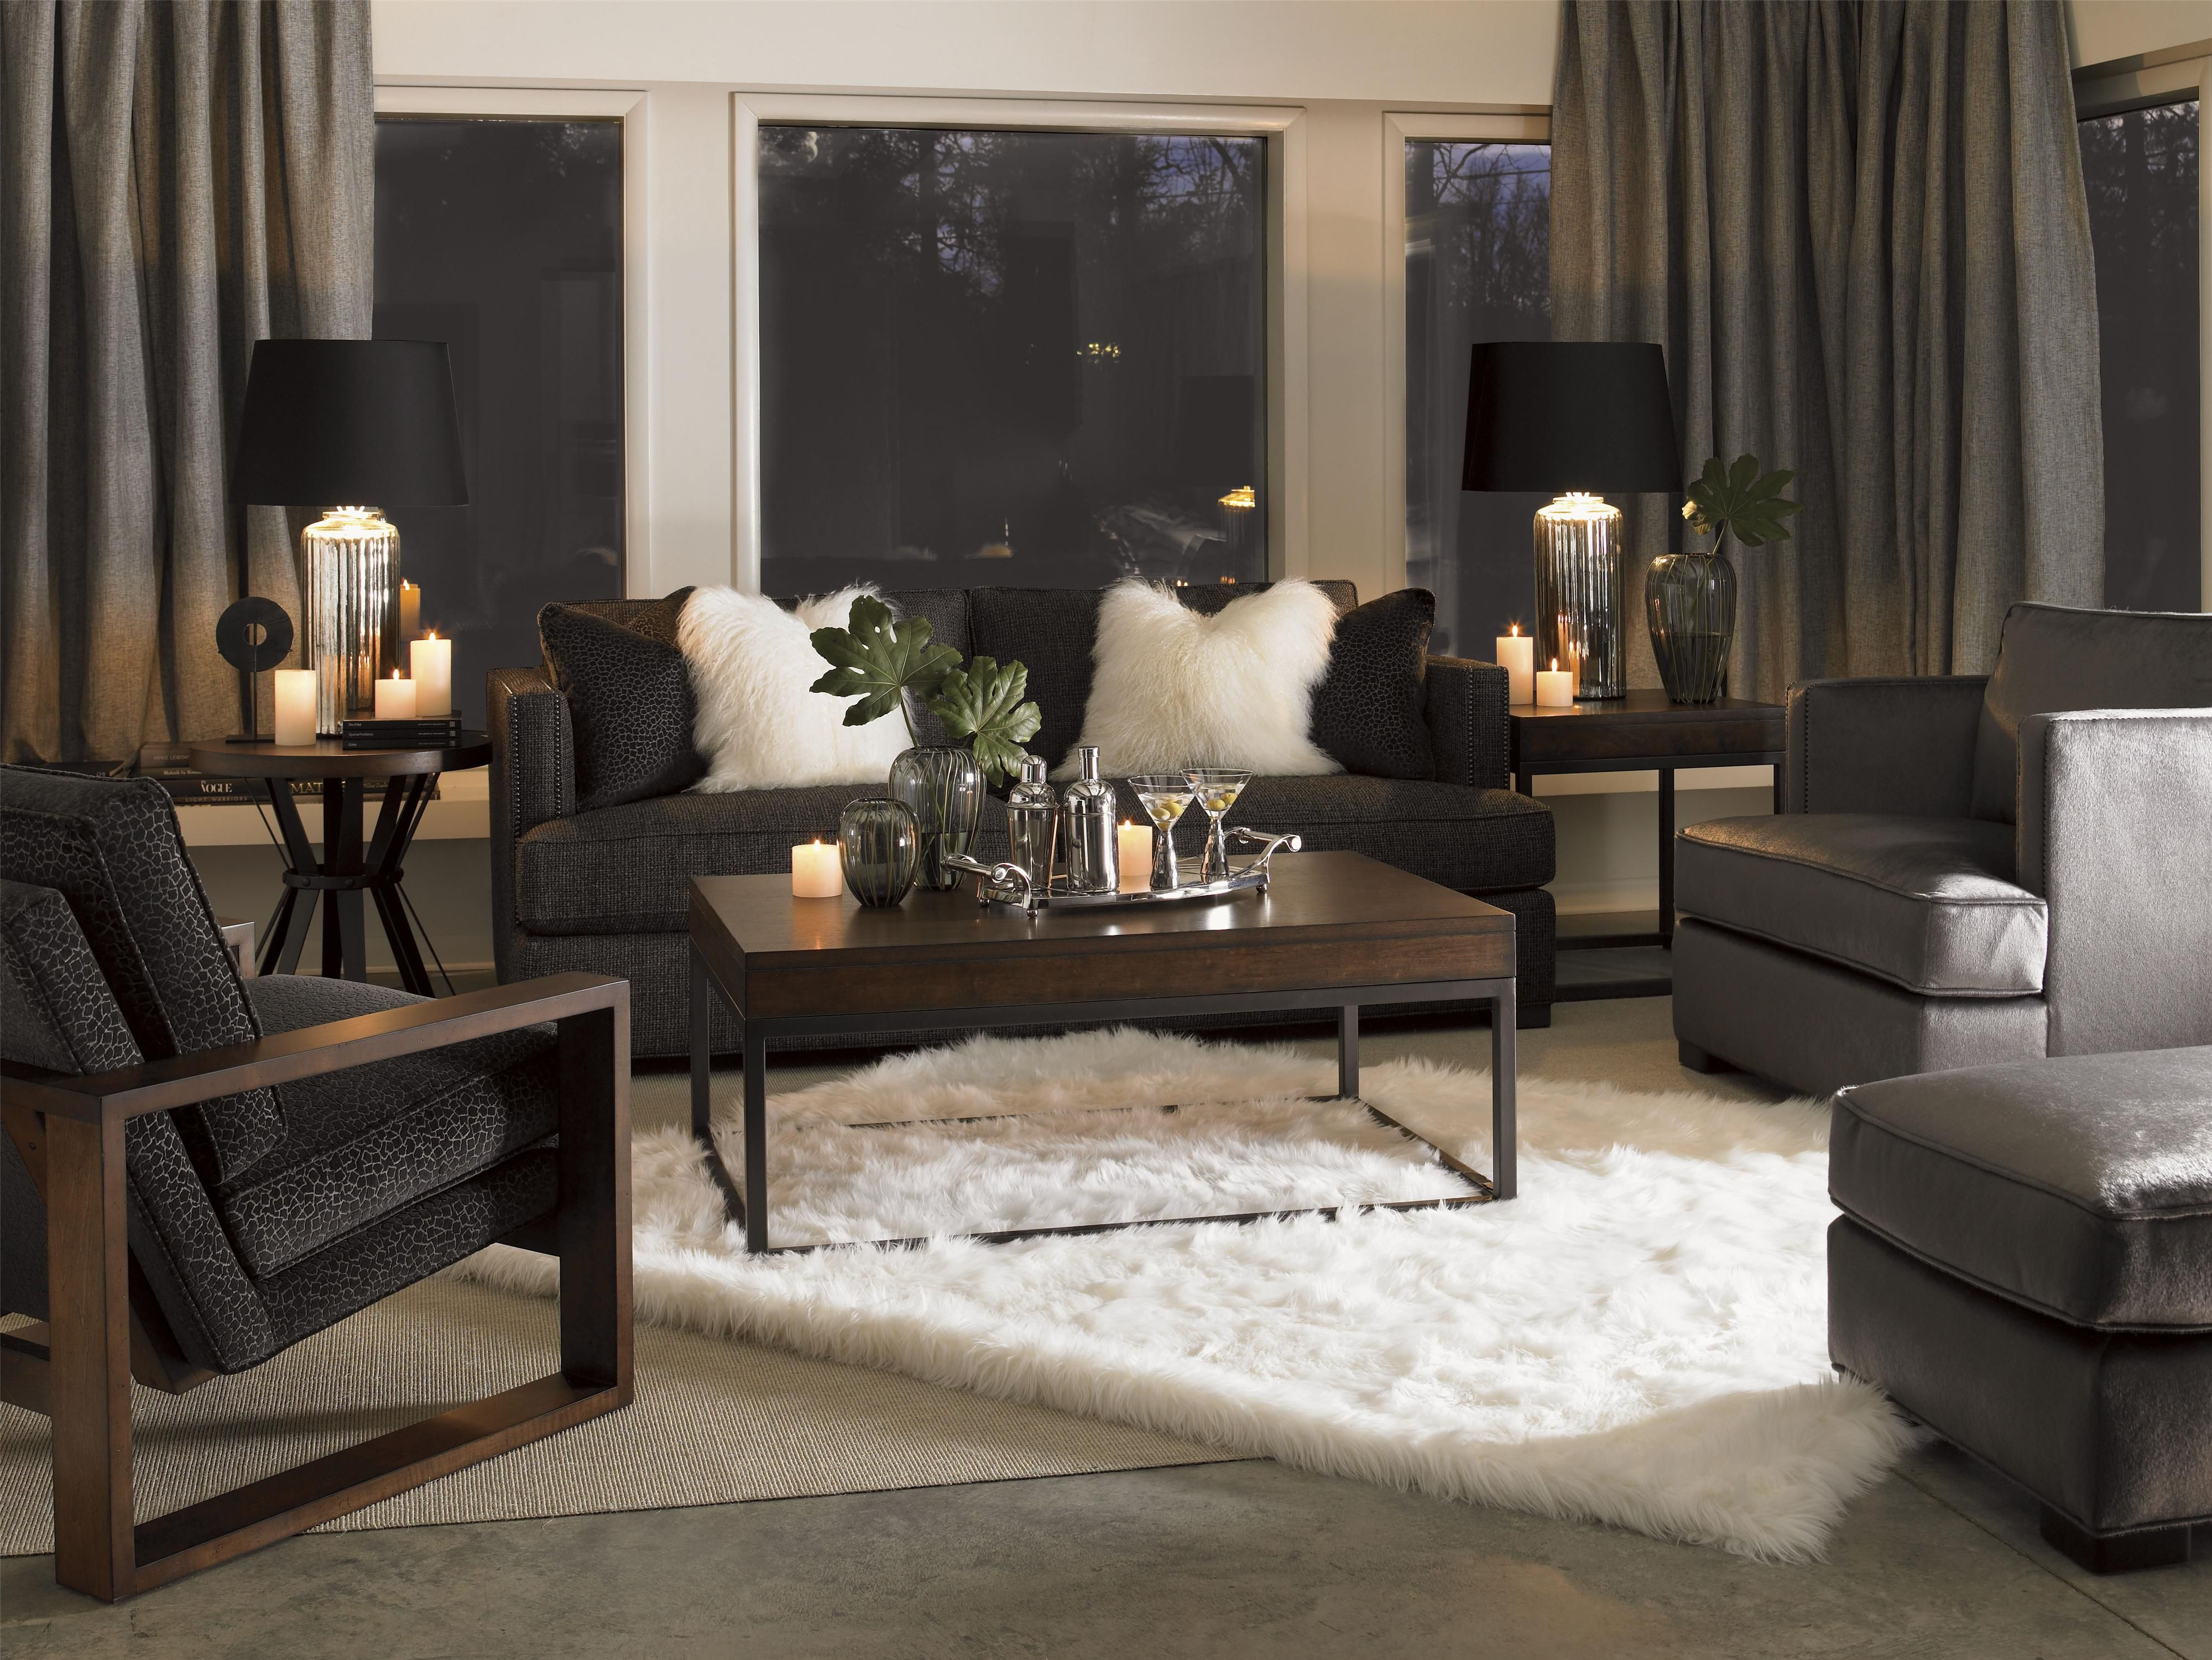 11 South Axis Sofa & Chairs with Exposed Wood by Lexington Home